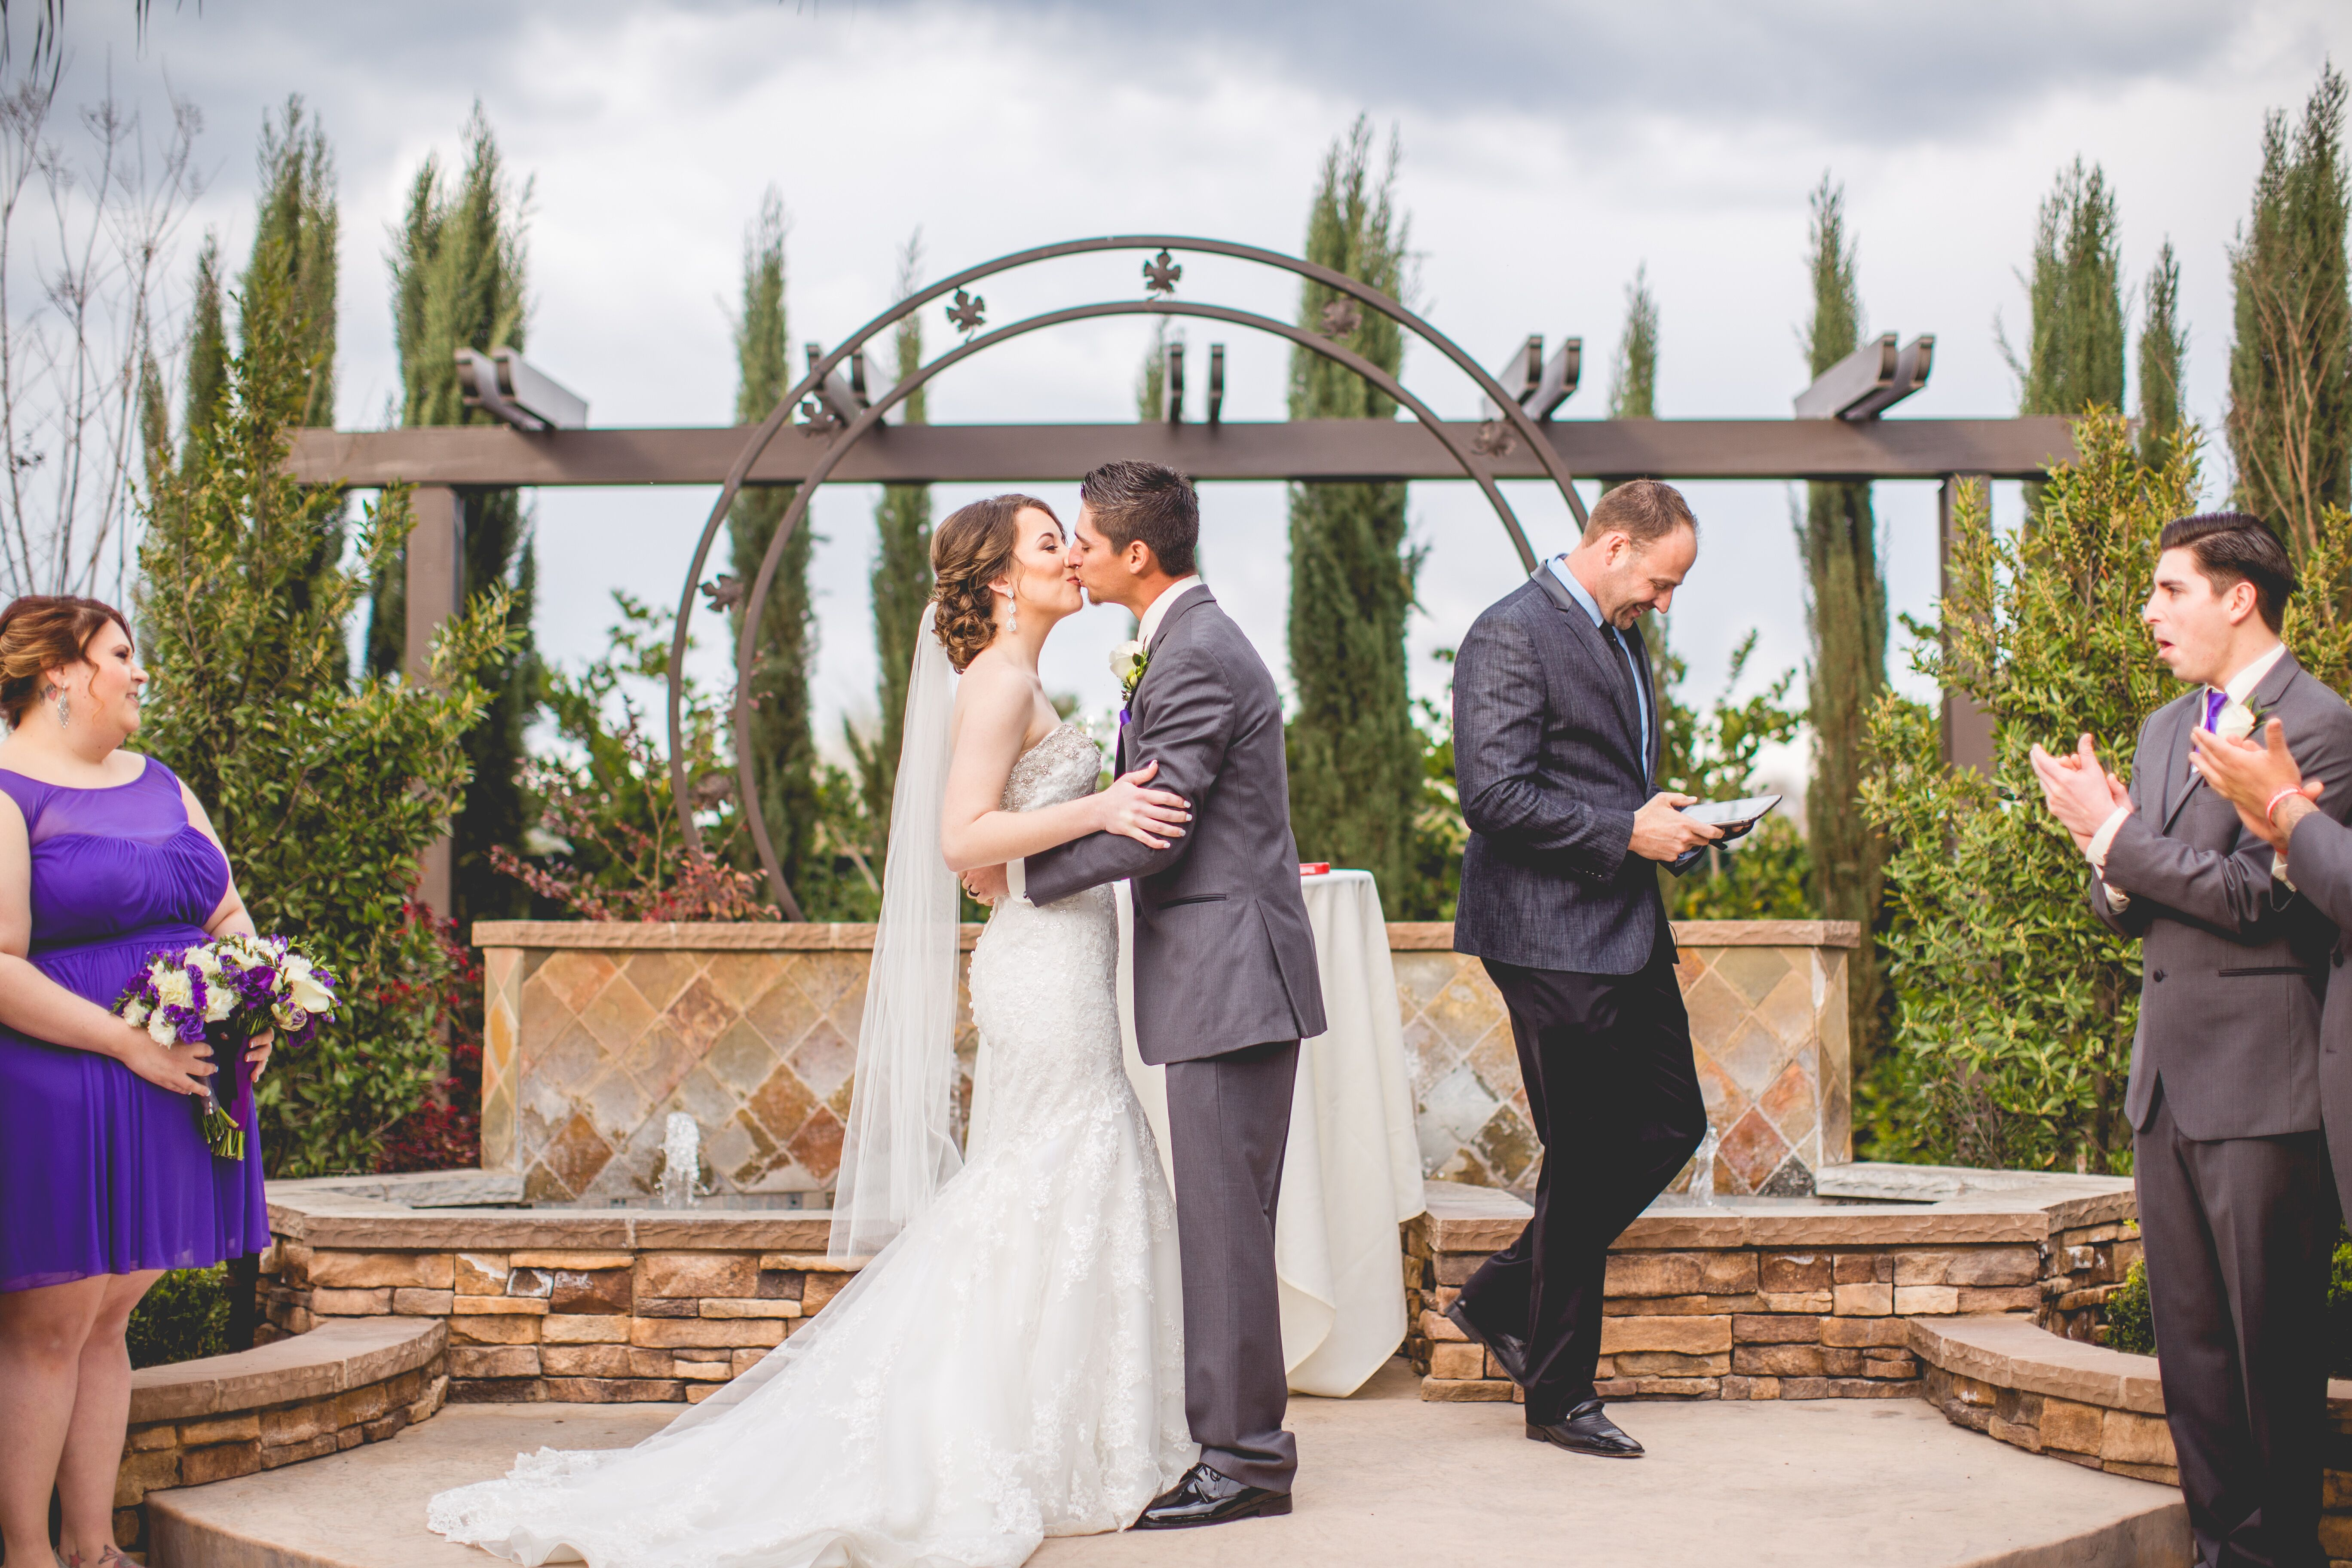 Wedding Reception Venues in Fresno, CA - The Knot